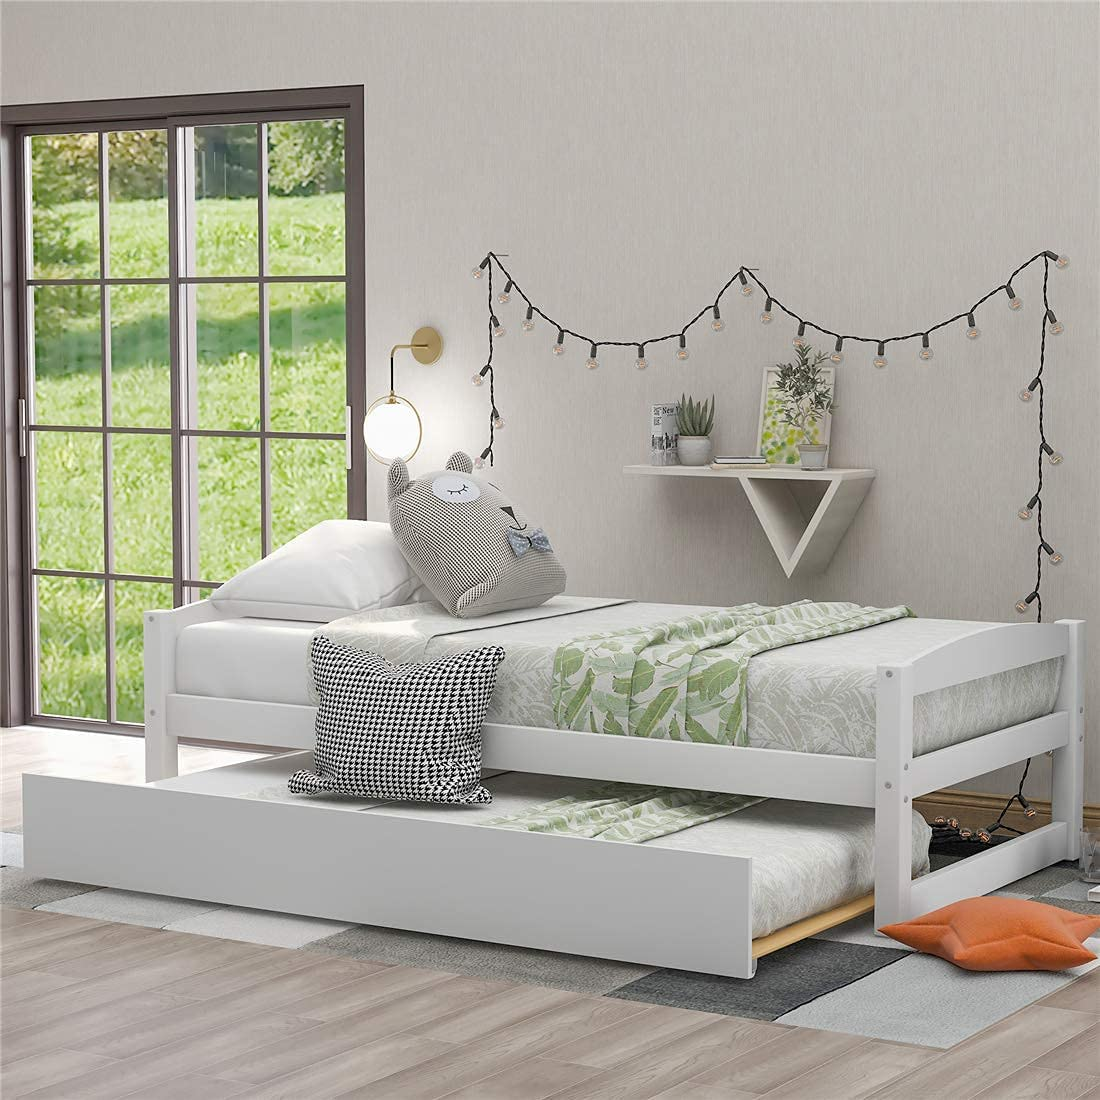 New popularity US Warehouse NUFR Home Platform Bed with Solid Trundle Wo Max 55% OFF Pine